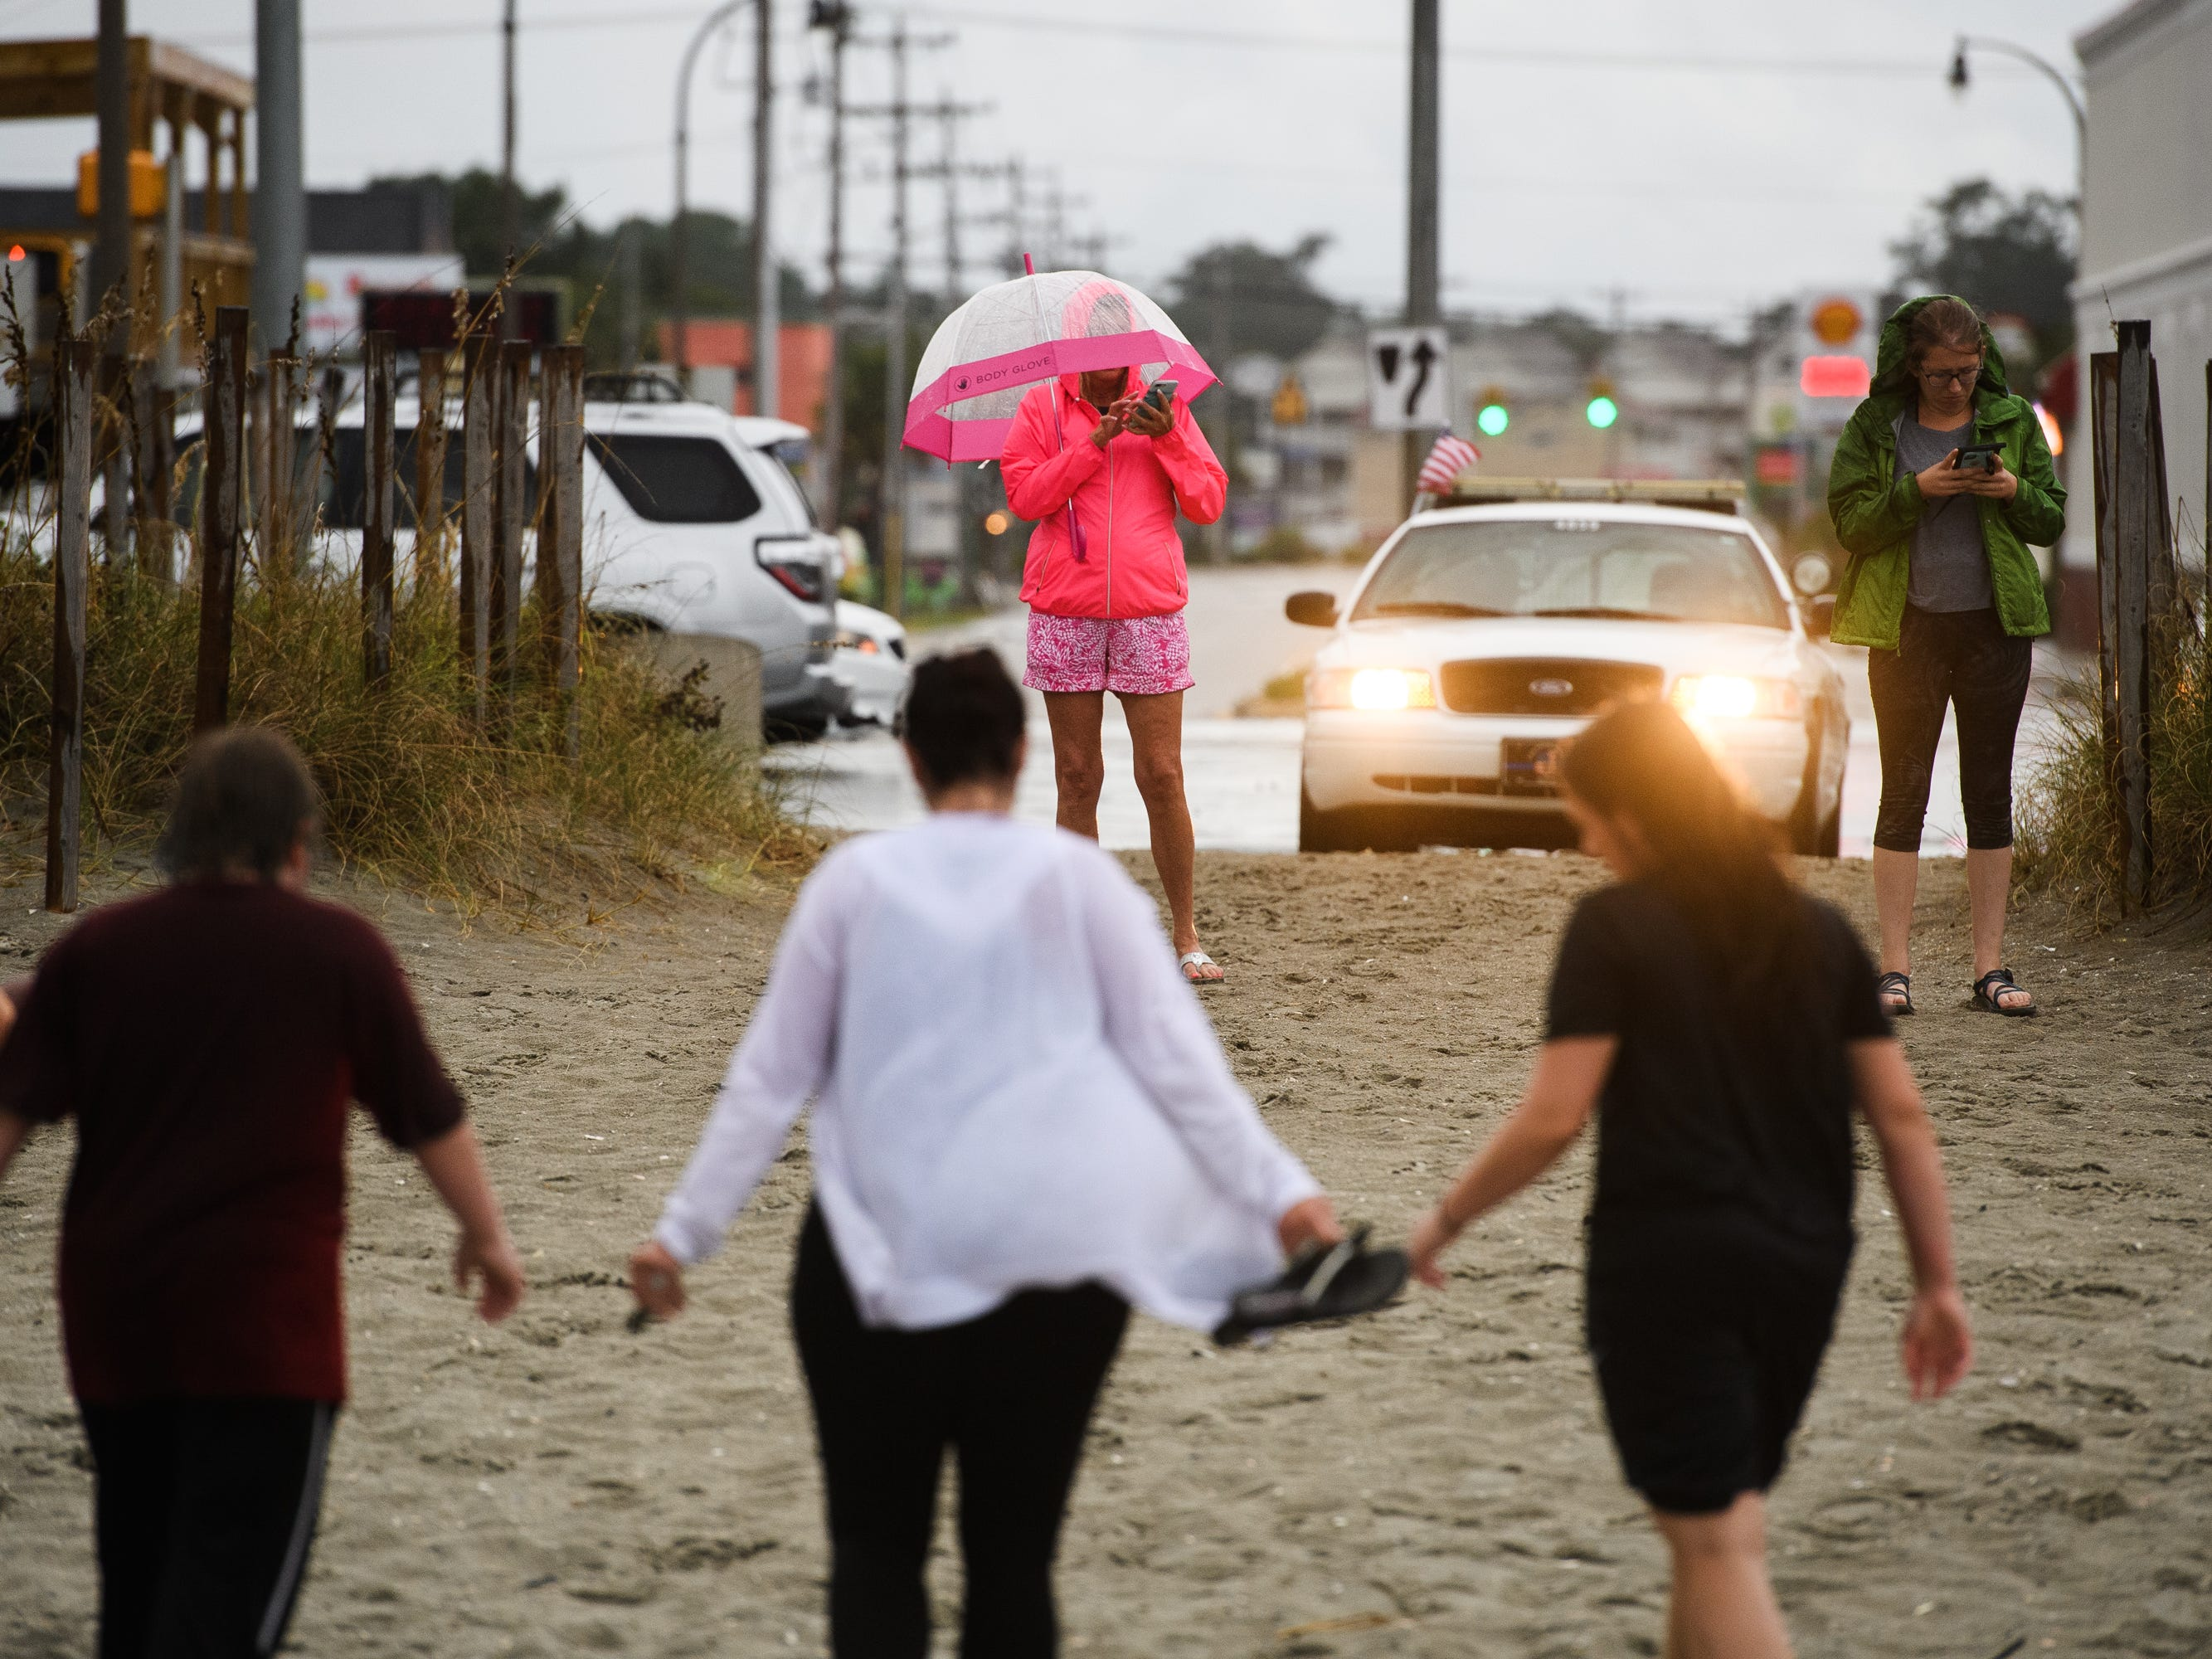 Beachgoers leave after being informed of a curfew due to Hurricane Florence on Thursday, Sept. 13, 2018.